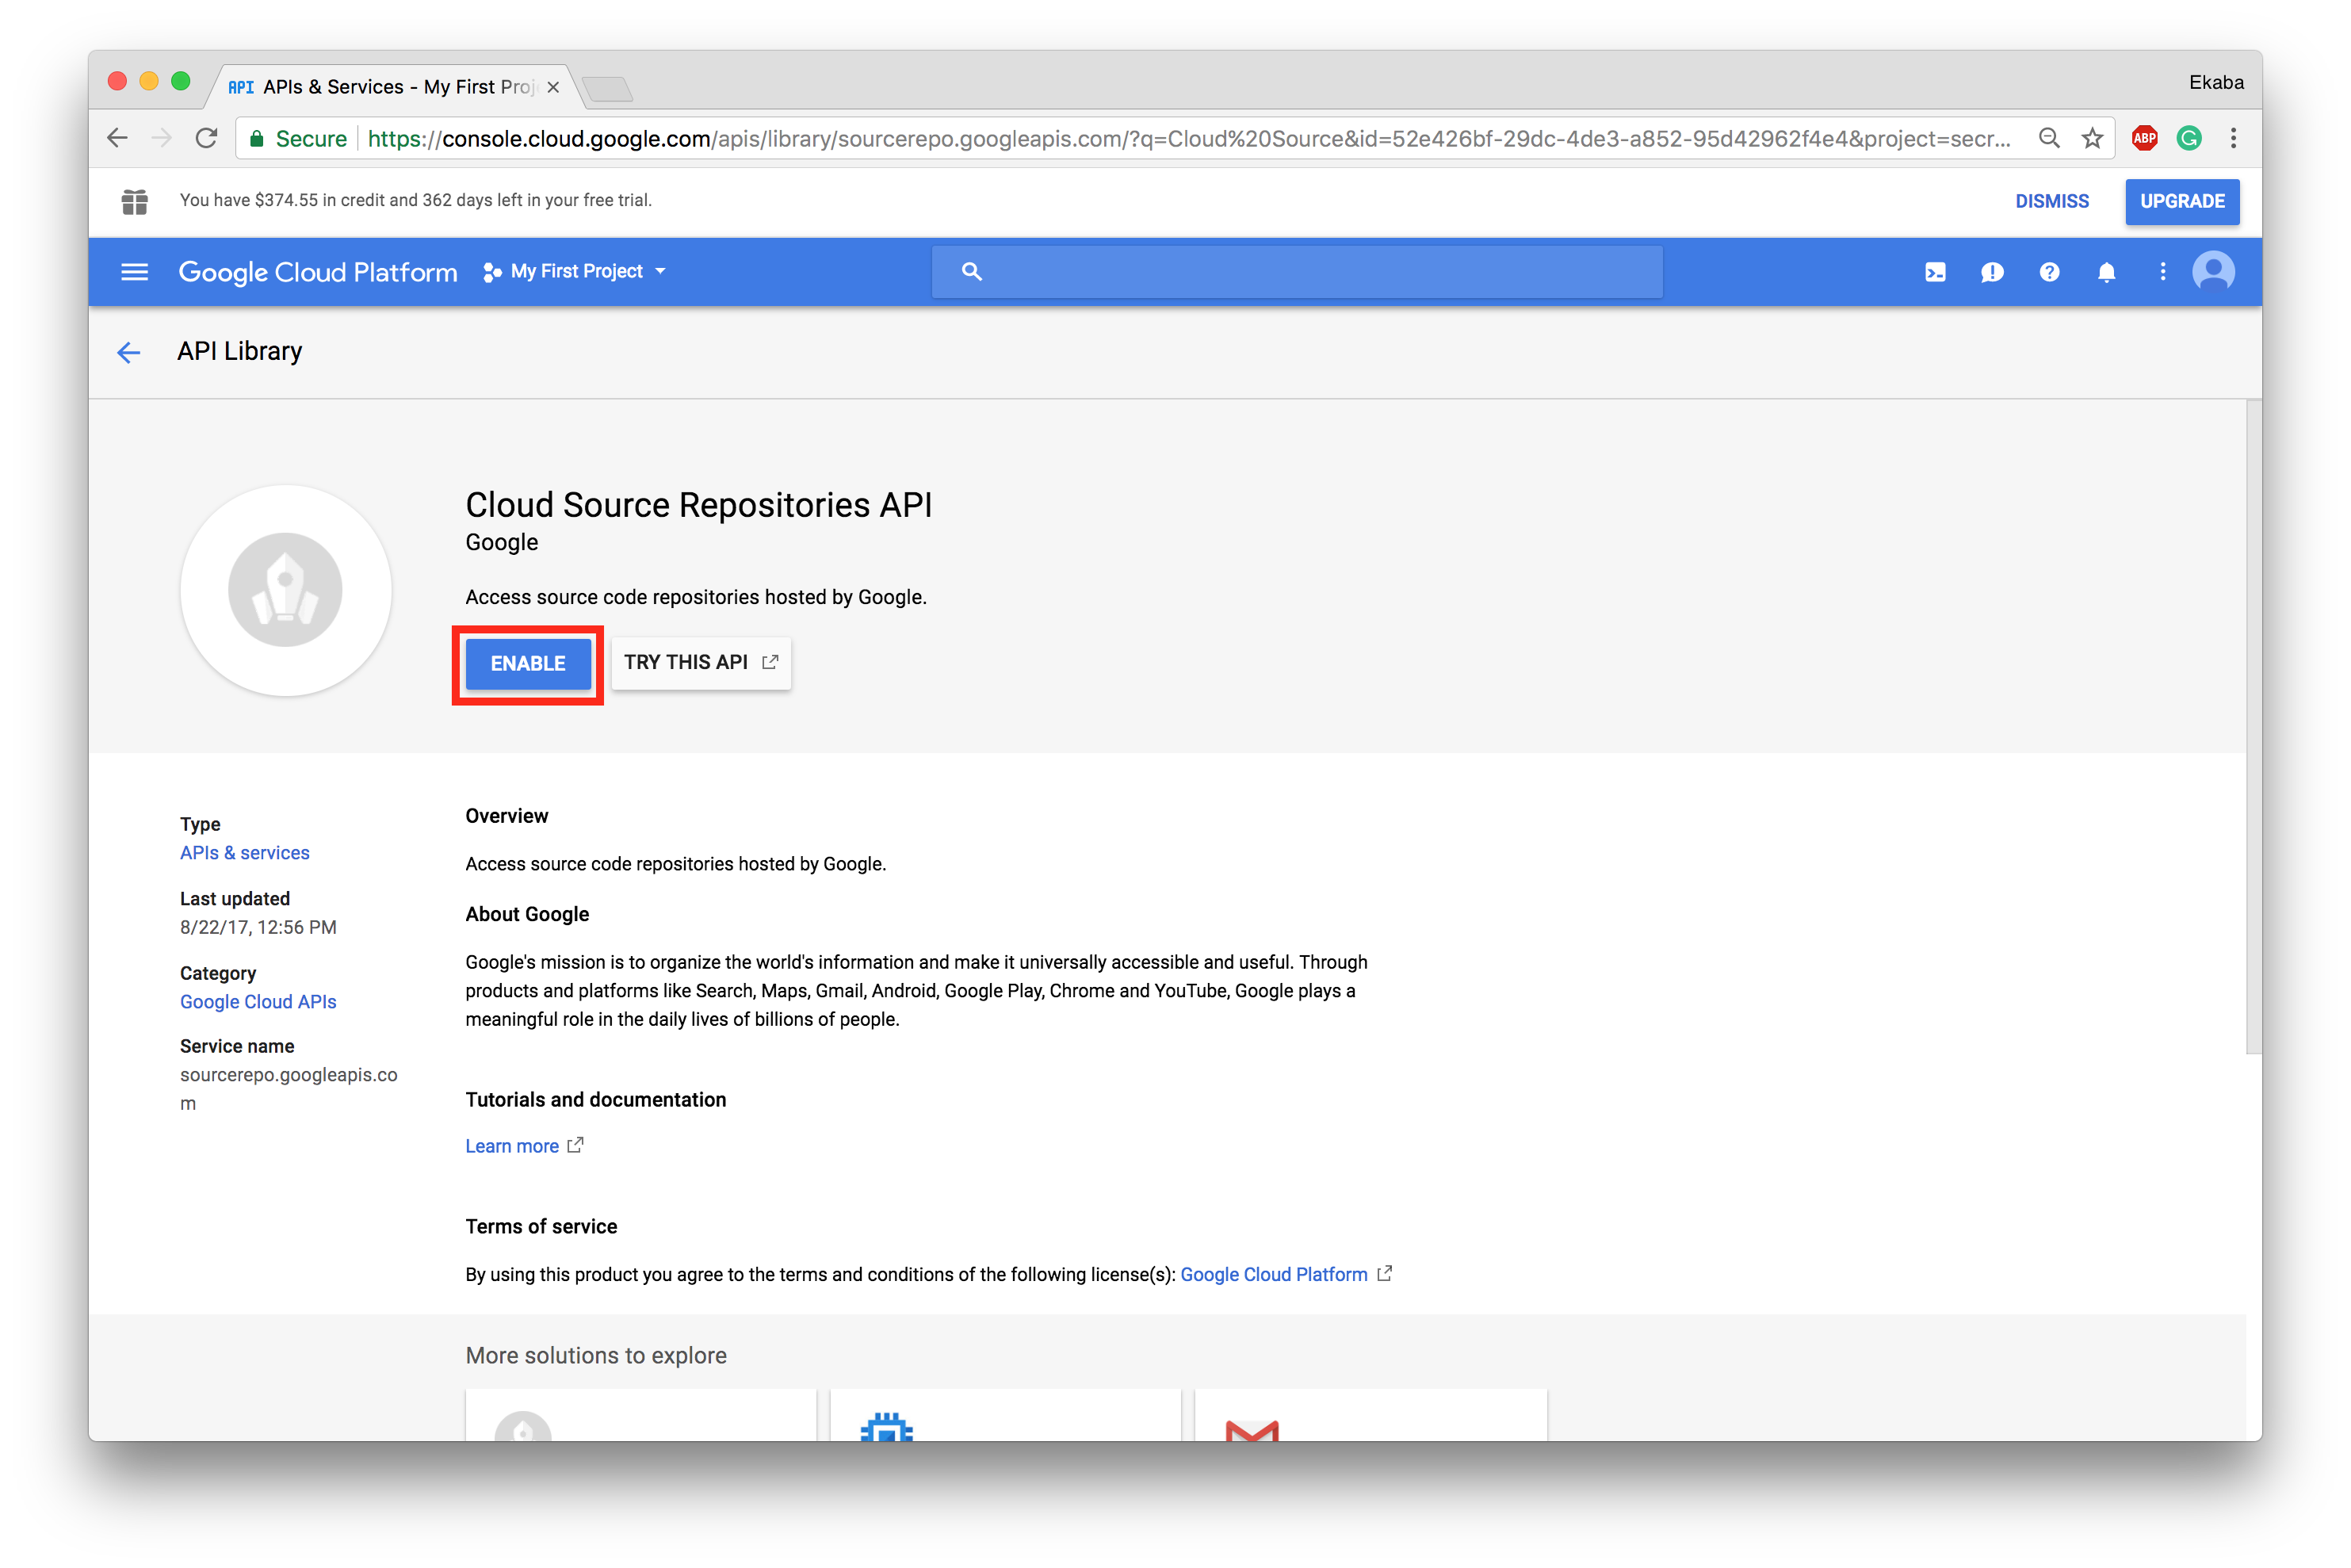 Enable Cloud Source Repositories API.